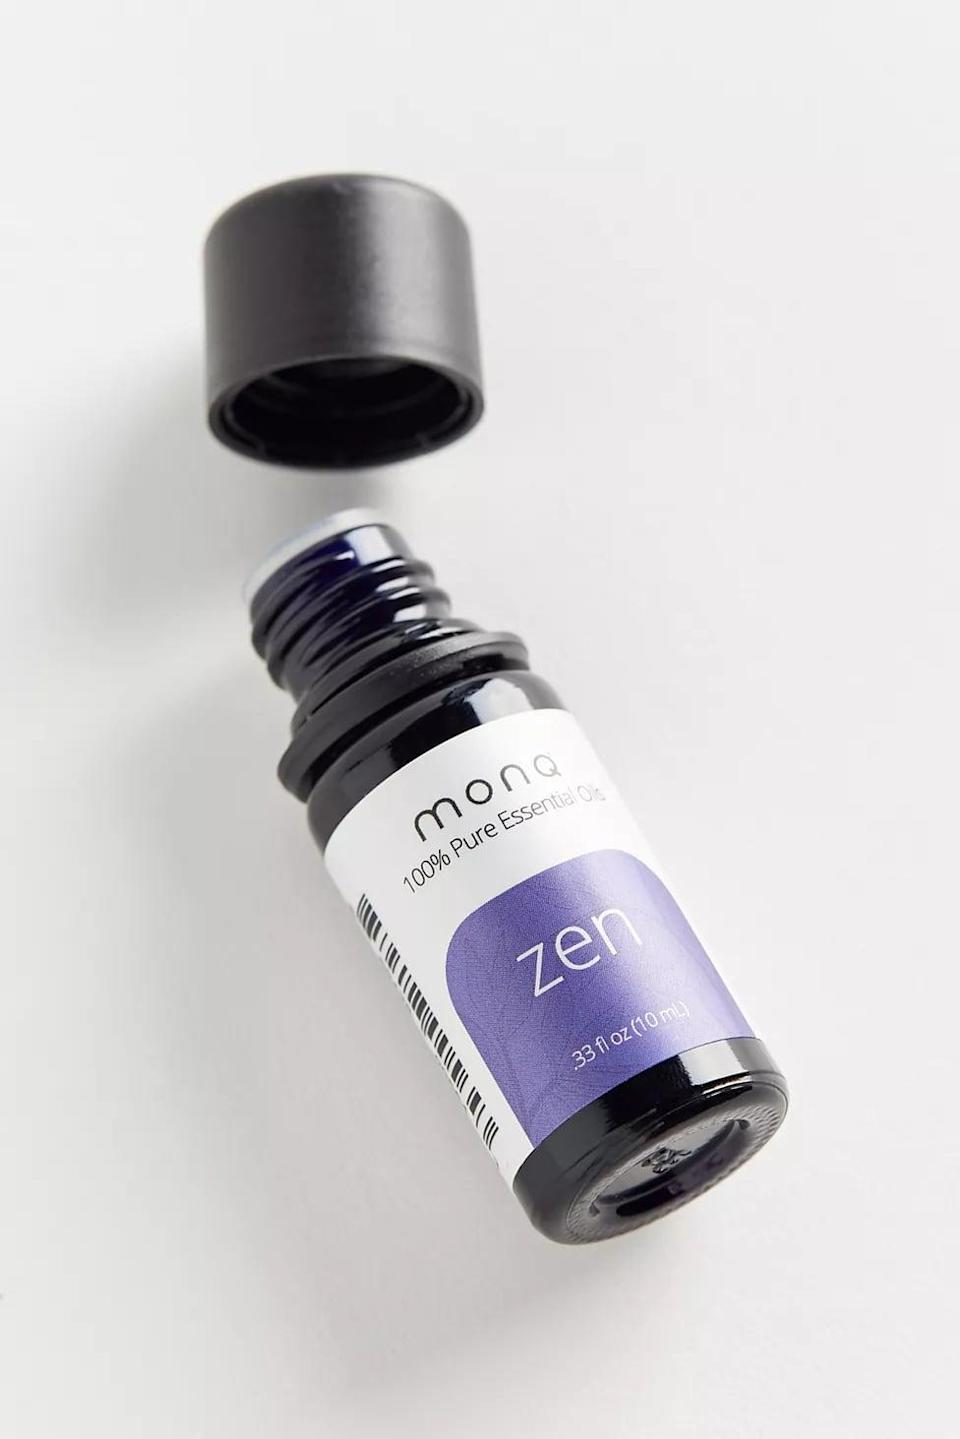 """<p>The combination of calming scents like ylang ylang and bergamot in the <a href=""""https://www.popsugar.com/buy/Monq-Zen-Pure-Essential-Oil-572309?p_name=Monq%20Zen%20Pure%20Essential%20Oil&retailer=urbanoutfitters.com&pid=572309&price=30&evar1=fit%3Aus&evar9=47456050&evar98=https%3A%2F%2Fwww.popsugar.com%2Ffitness%2Fphoto-gallery%2F47456050%2Fimage%2F47456587%2FMonq-Zen-Pure-Essential-Oil&prop13=mobile&pdata=1"""" class=""""link rapid-noclick-resp"""" rel=""""nofollow noopener"""" target=""""_blank"""" data-ylk=""""slk:Monq Zen Pure Essential Oil"""">Monq Zen Pure Essential Oil</a> ($30) may help you reach ultimate relaxation levels. If you don't have a diffuser, you can simply add a few drops to a steamy shower and chill out.</p>"""